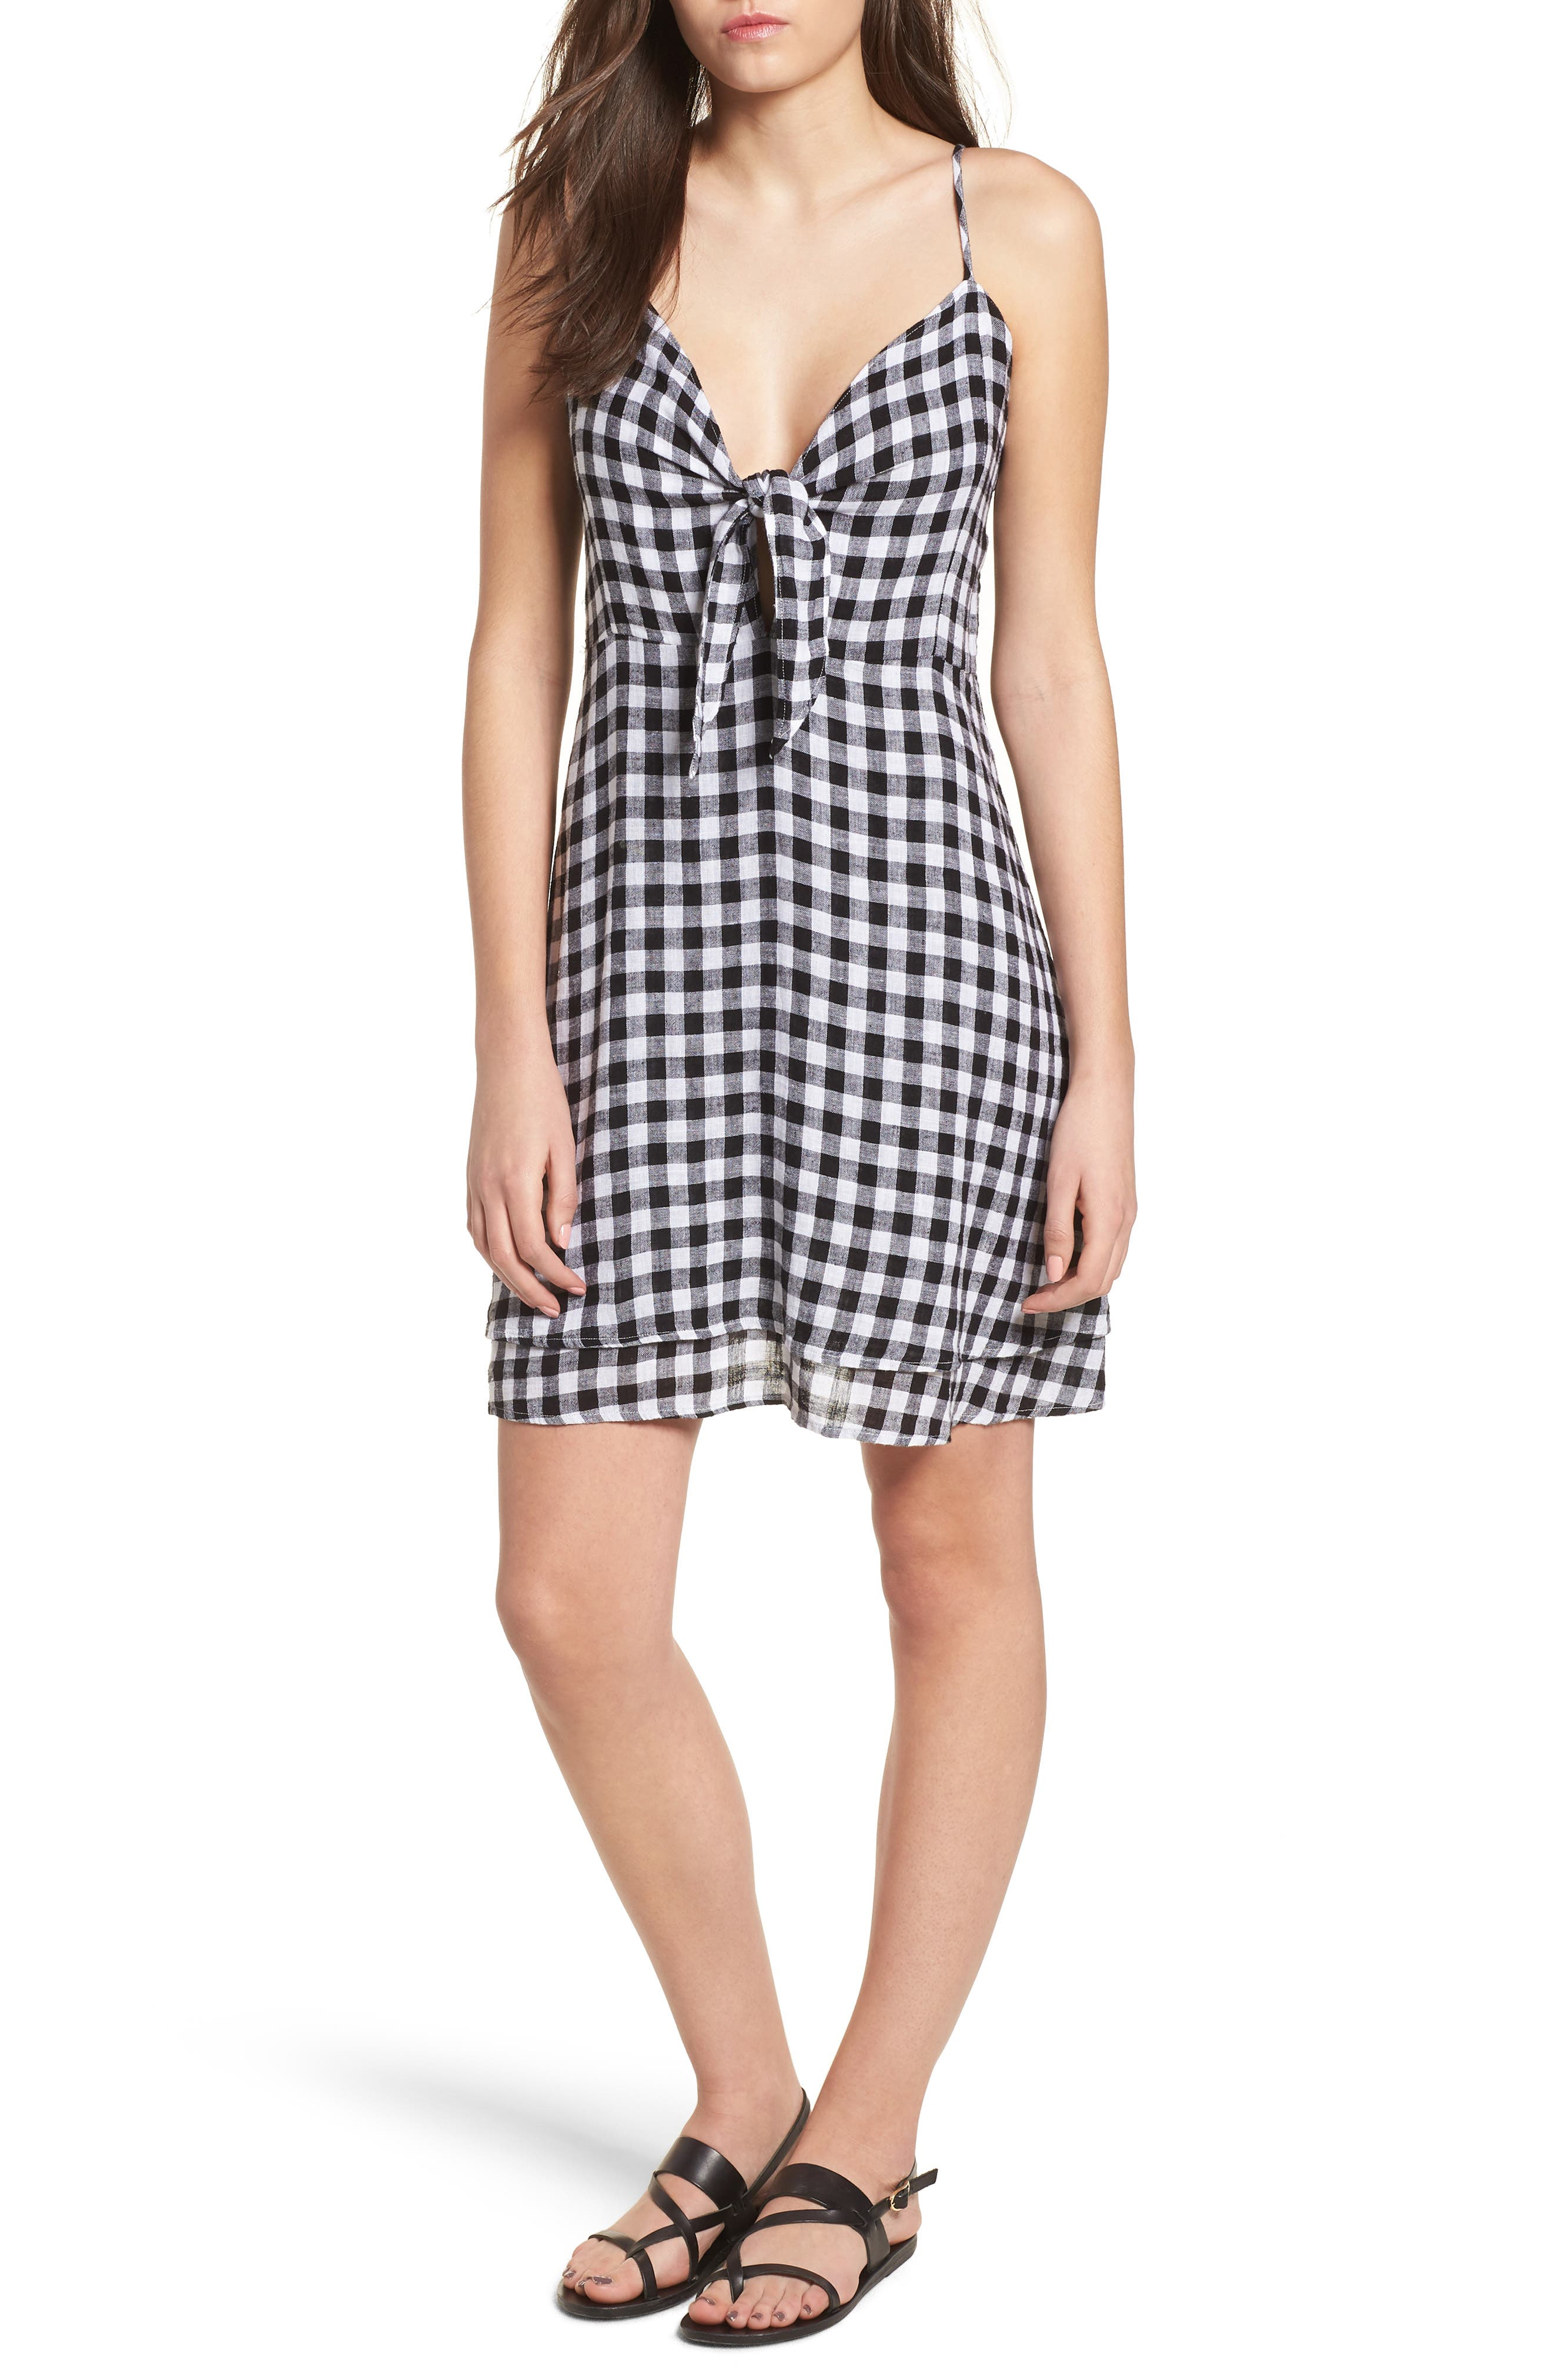 August Gingham Tie Front Dress,                             Main thumbnail 1, color,                             BLACK GINGHAM